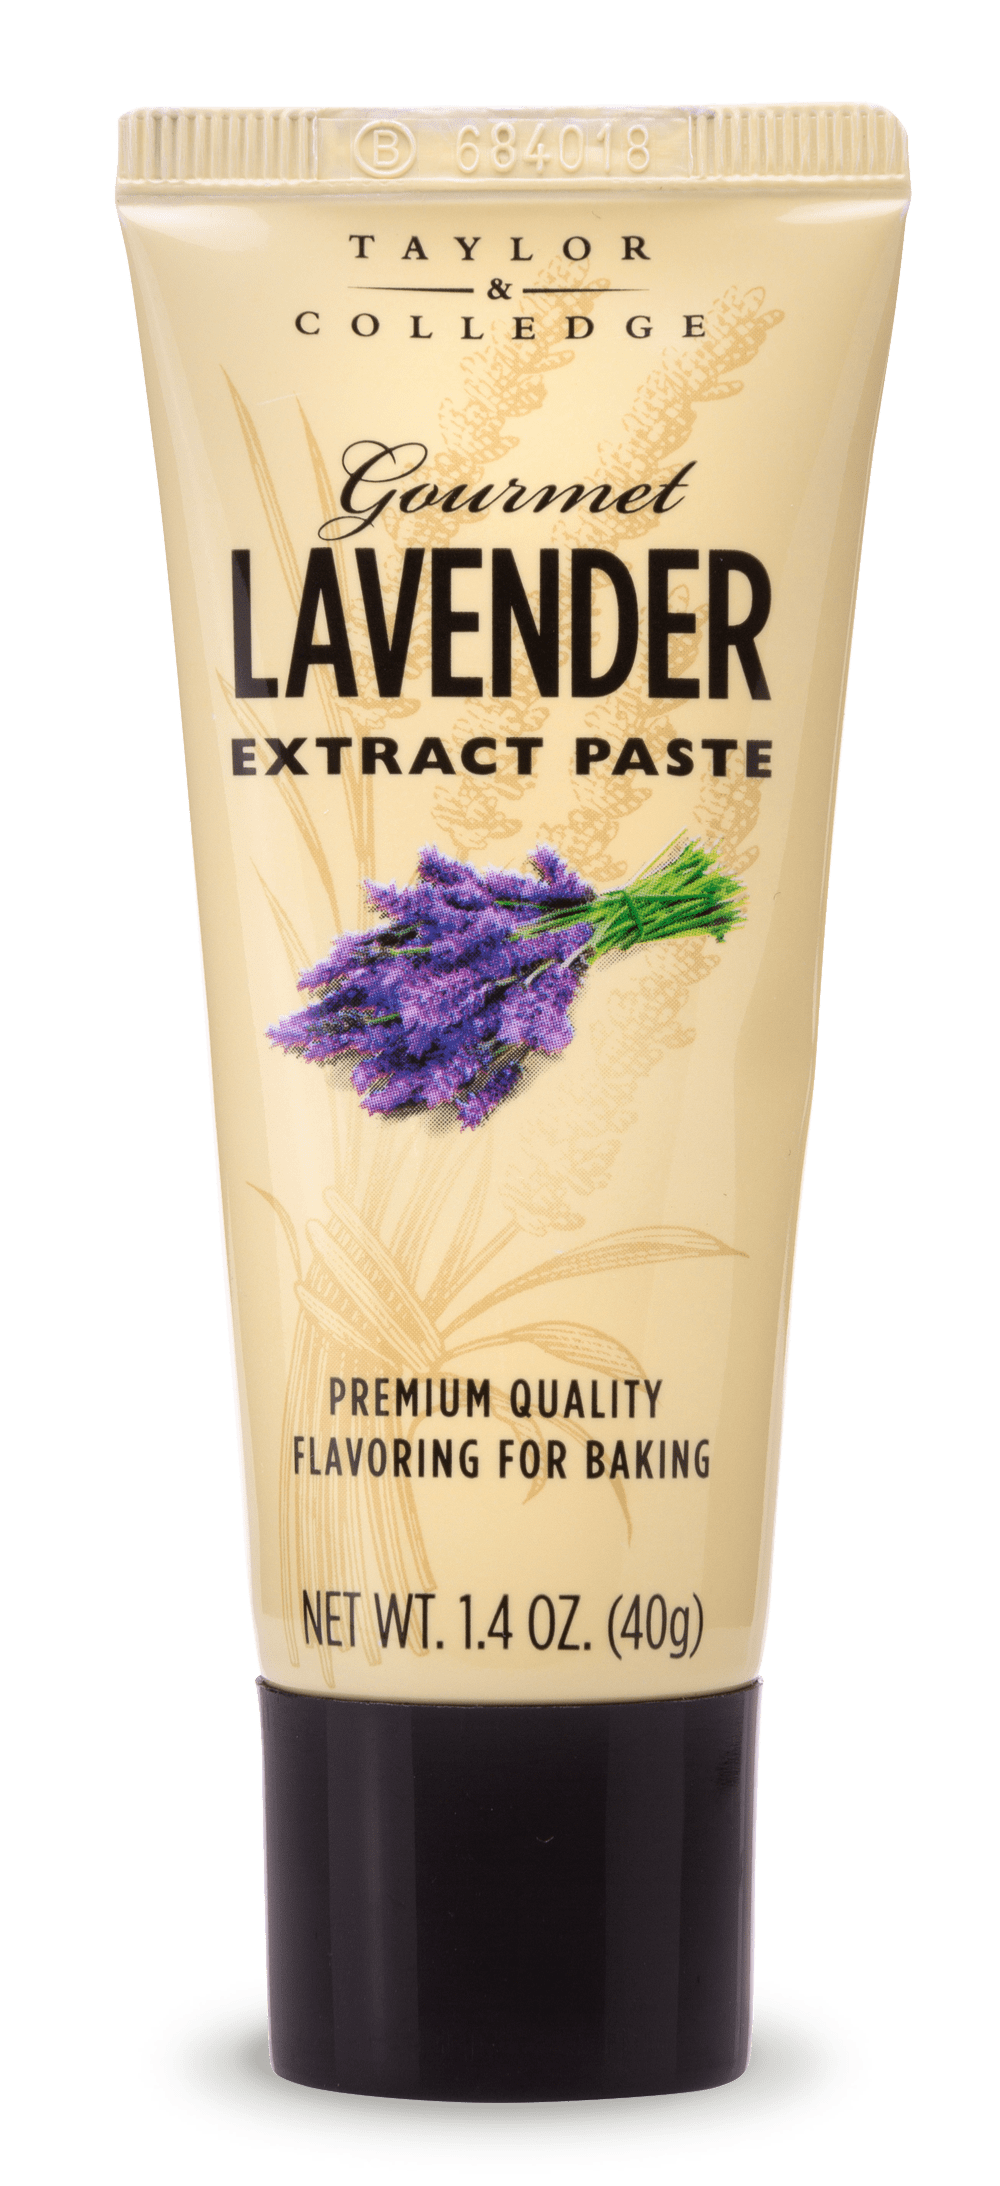 Gourmet Lavender Extract Paste - Taylor and Colledge